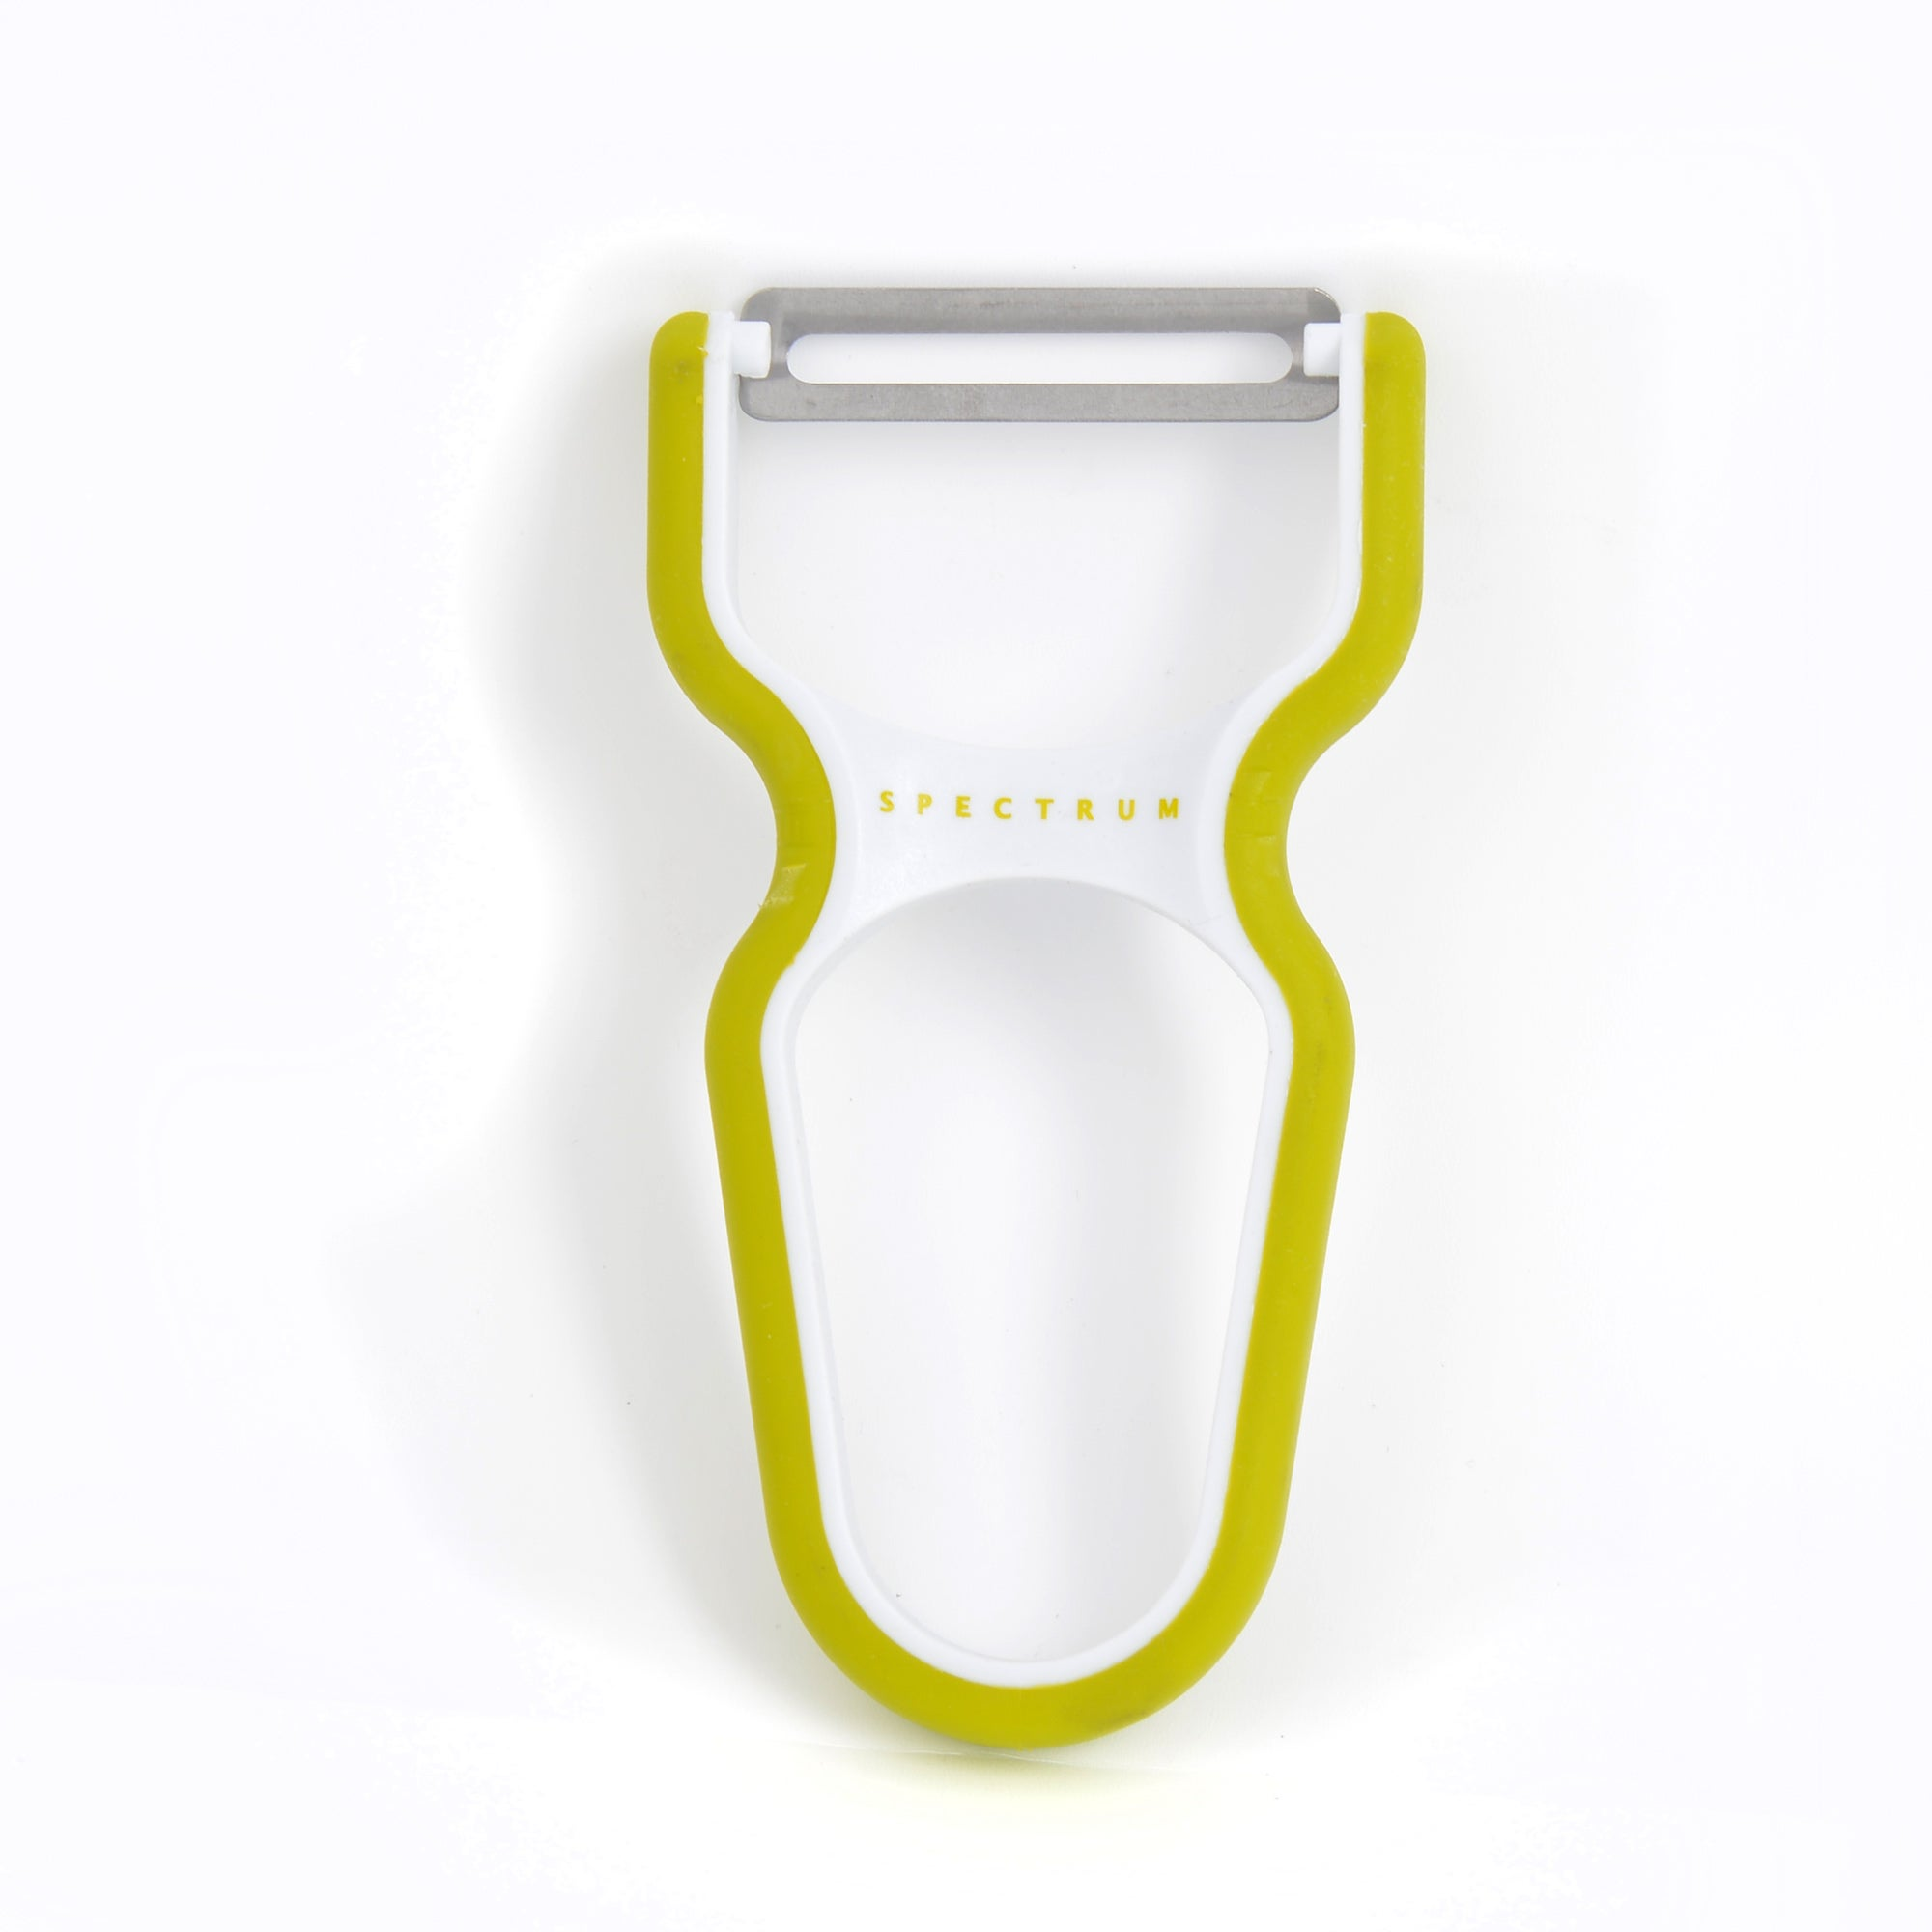 Lime Spectrum Collection Soft Touch Peeler